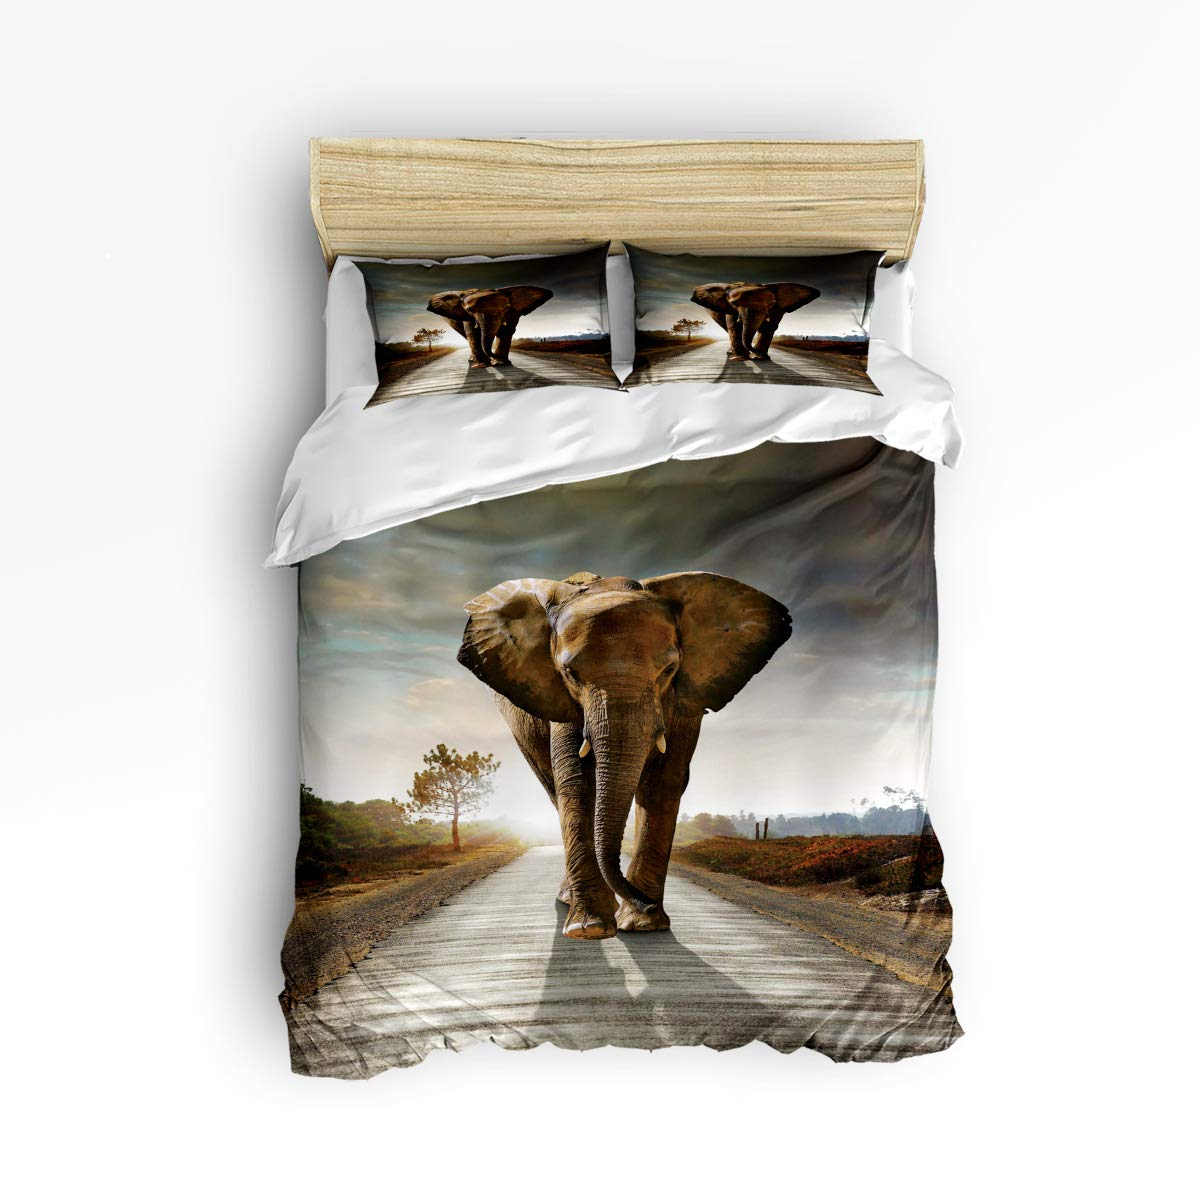 YEHO Art Gallery King Size 3 Piece Duvet Cover Set Super Soft Bedding Sets for Kids Boys Girls,The Landscape of Elephant Art Prints,Include 1 Comforter Cover and 2 Pillow Cases